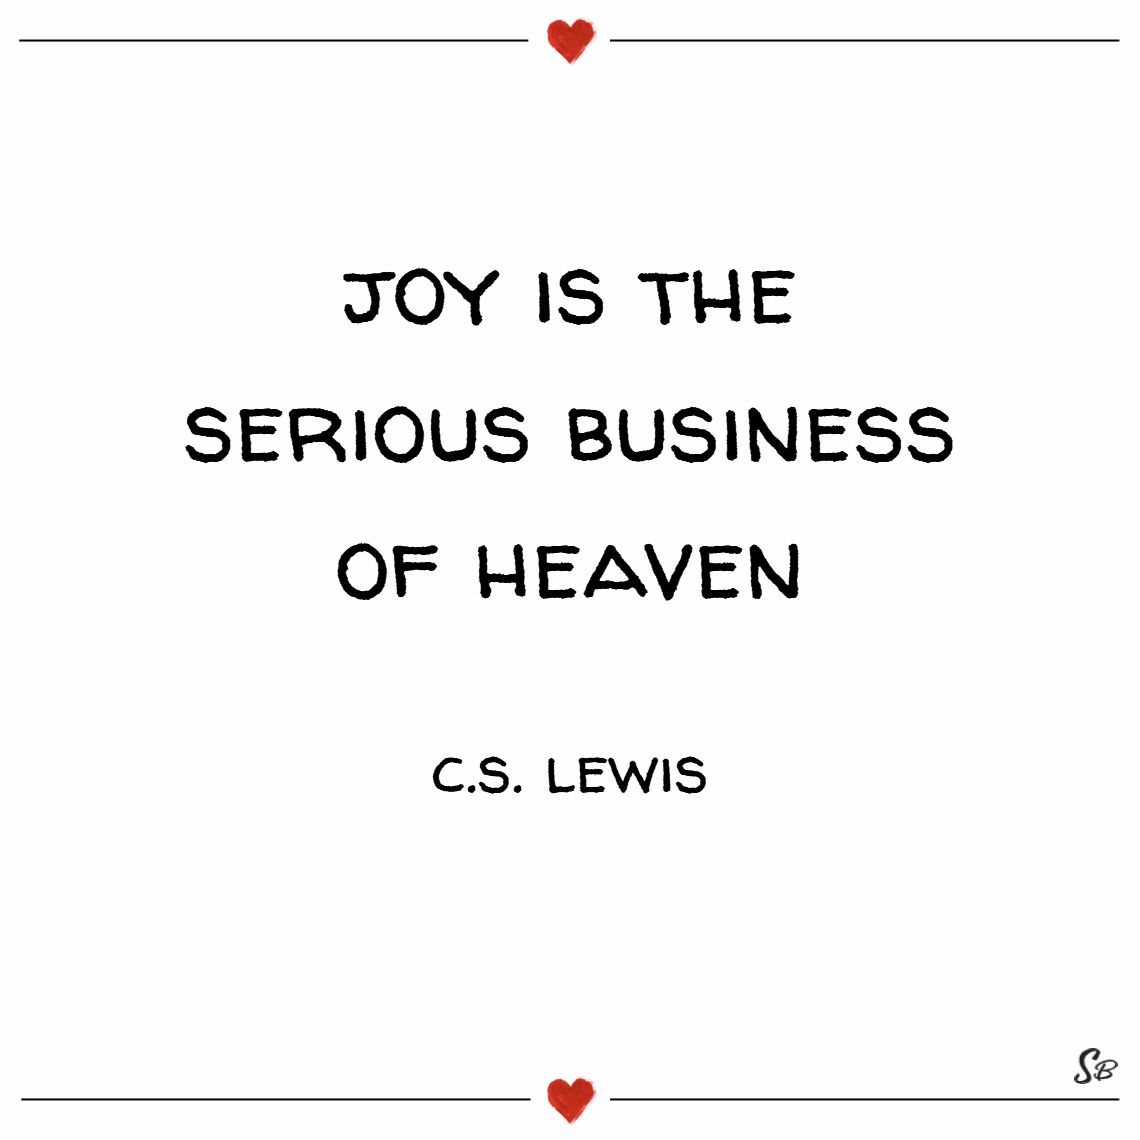 Joy is the serious business of heaven. – c. s. lewis